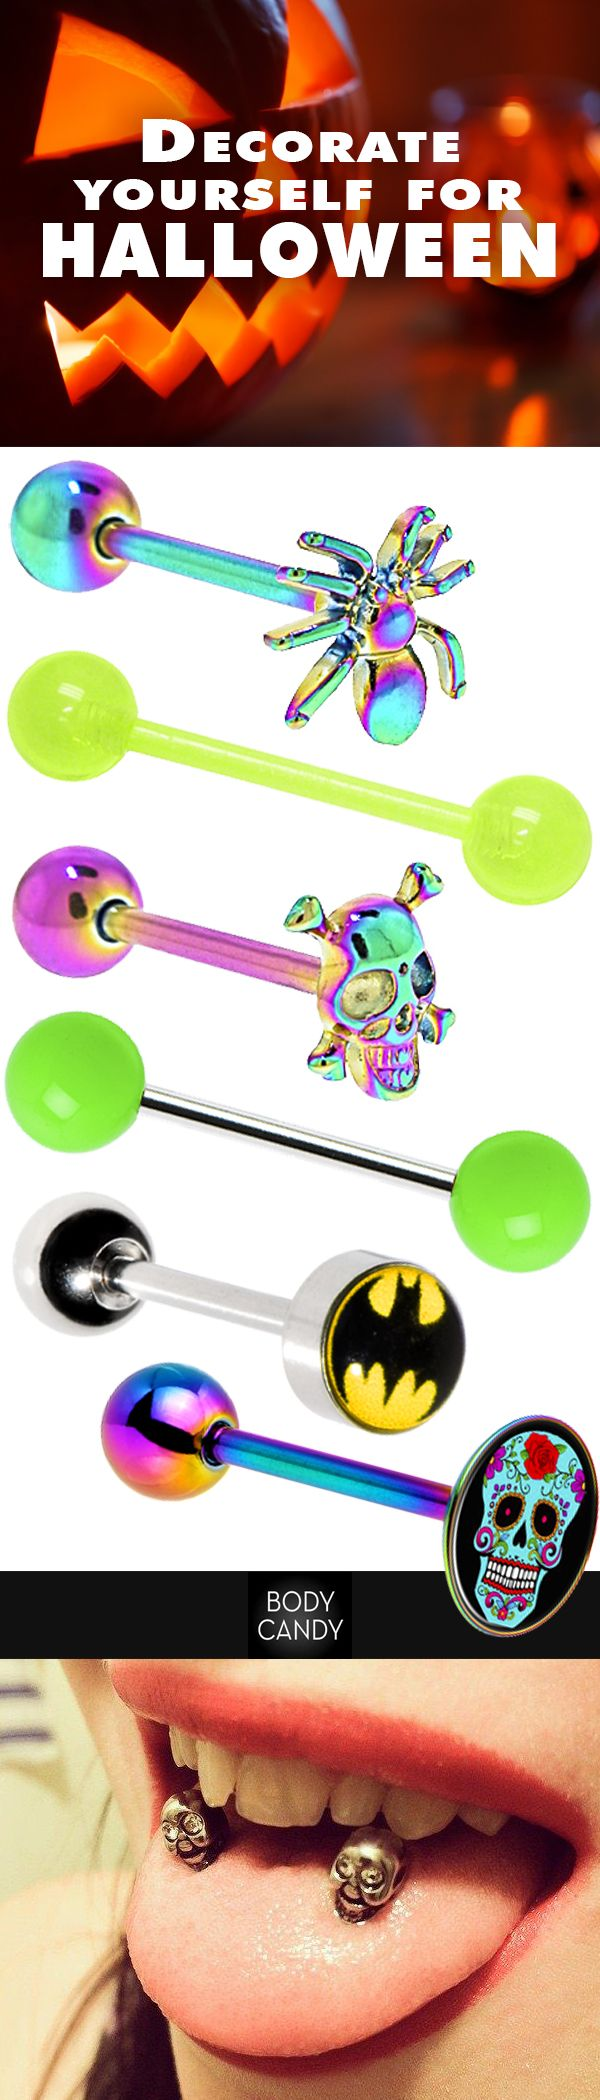 Tongue piercing areas  Double double toil and tongue rings See more at BodyCandy